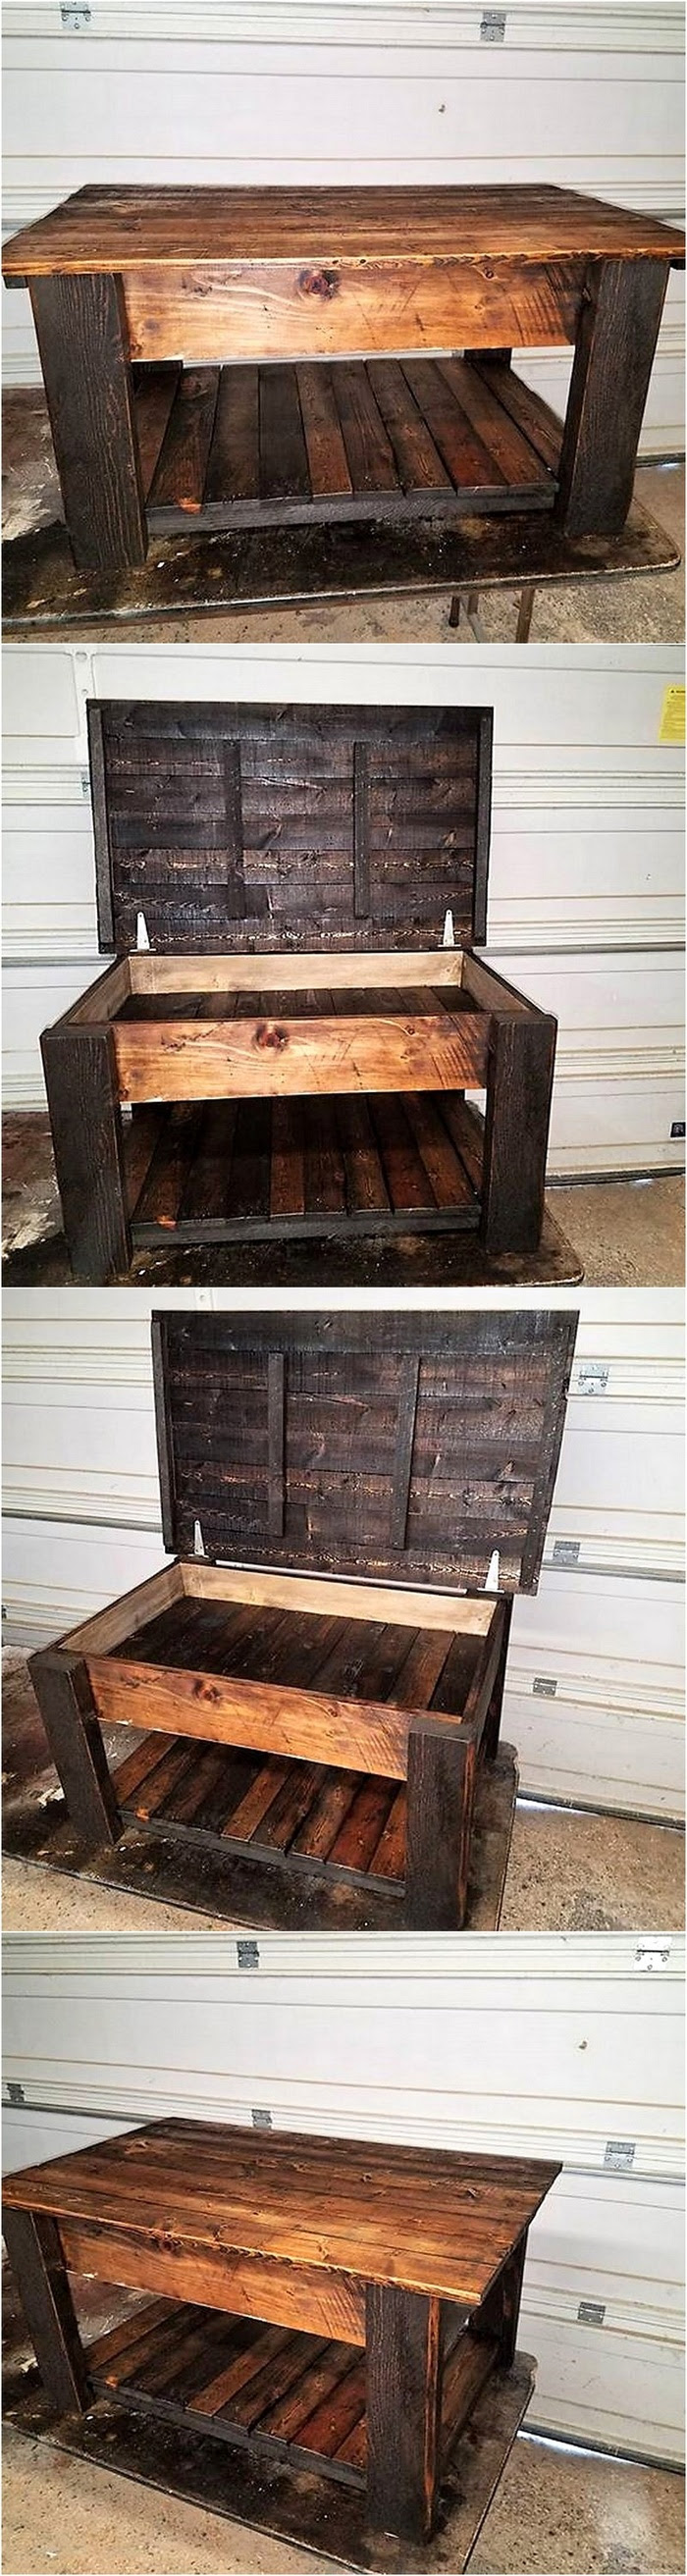 40 Easy Ideas for Pallet Recycling | Page 2 | Wood Pallet ...